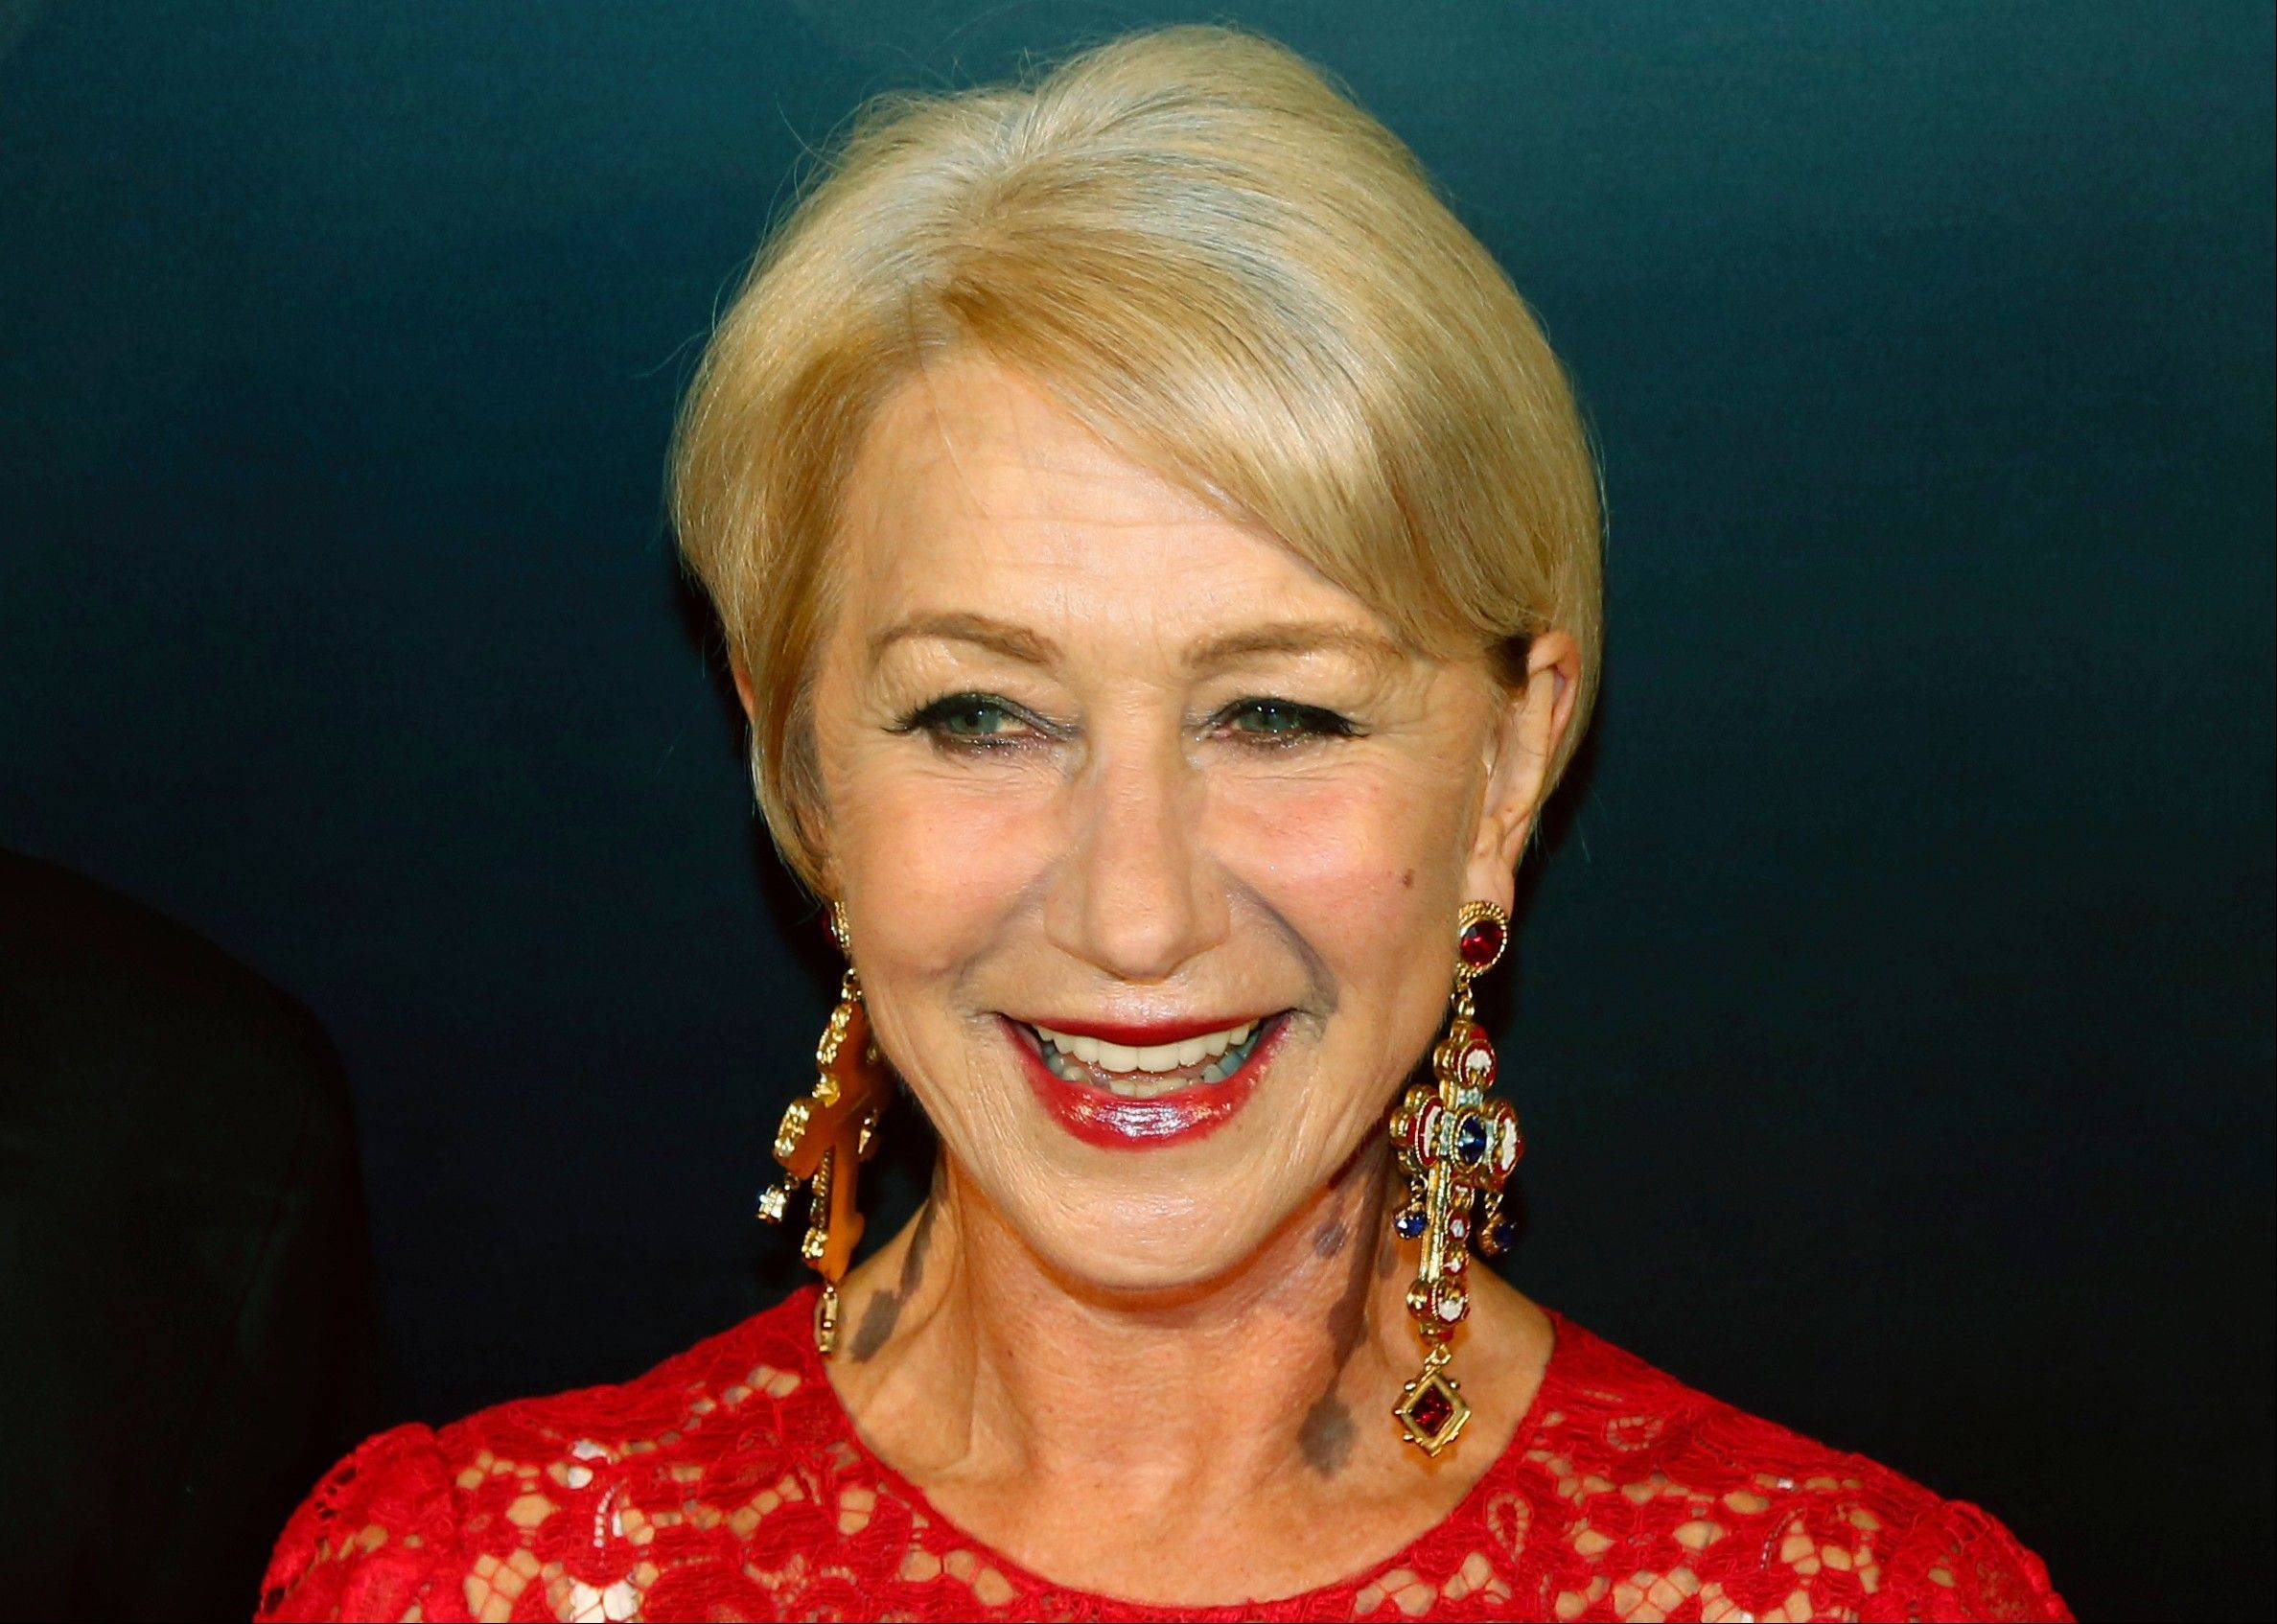 British actress Helen Mirren was named Friday, Jan. 17, 2014, as Harvard University's Hasty Pudding Theatricals 2014 Woman of the Year.